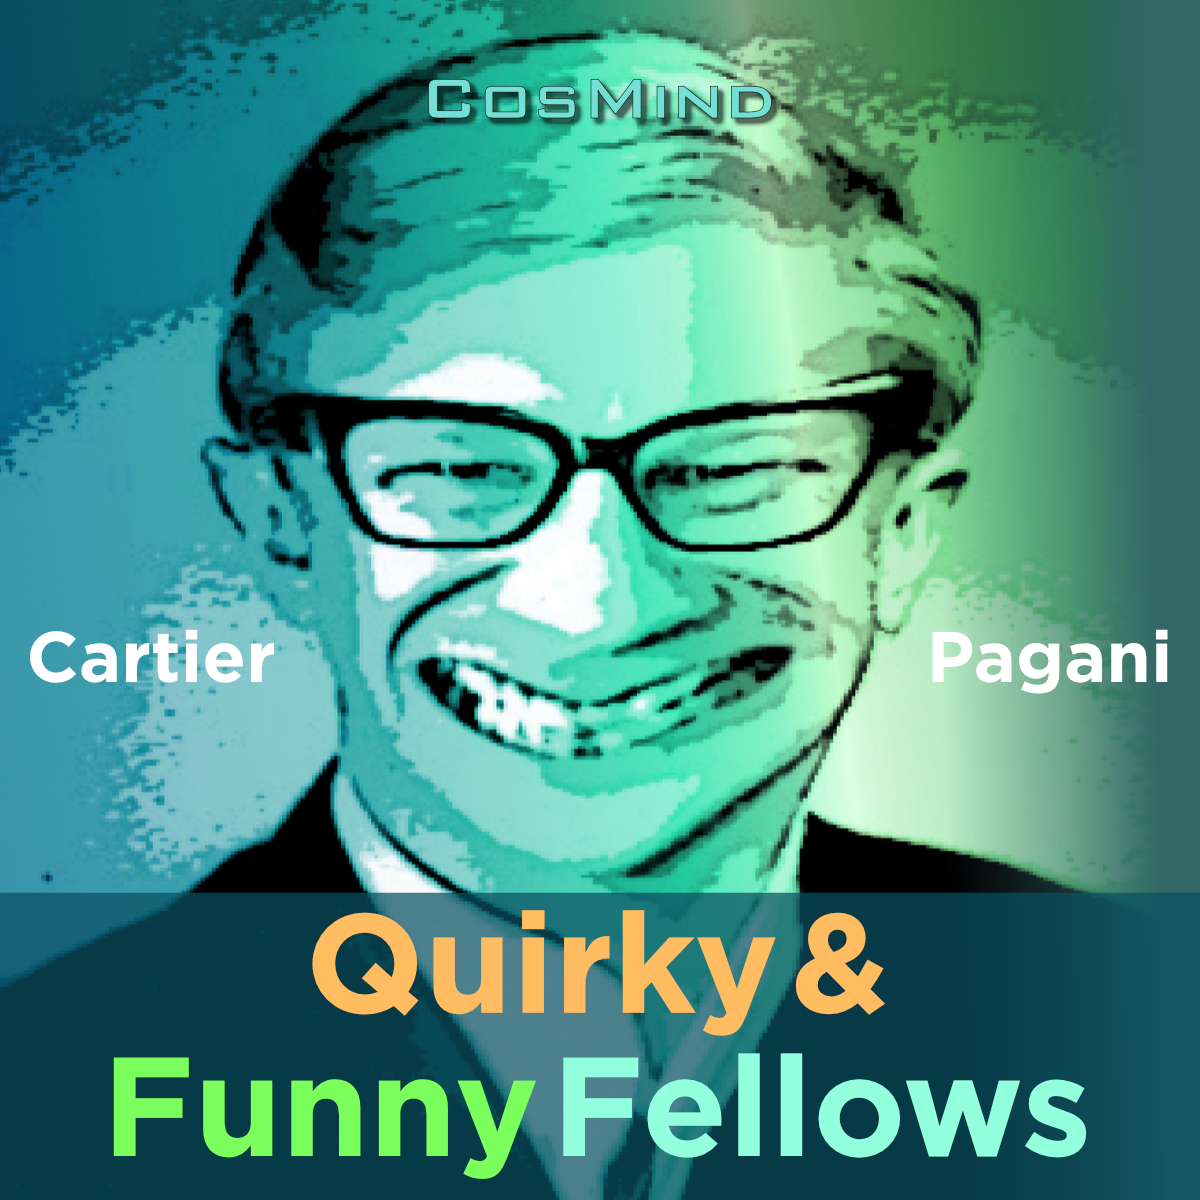 Quirky & Funny Fellows